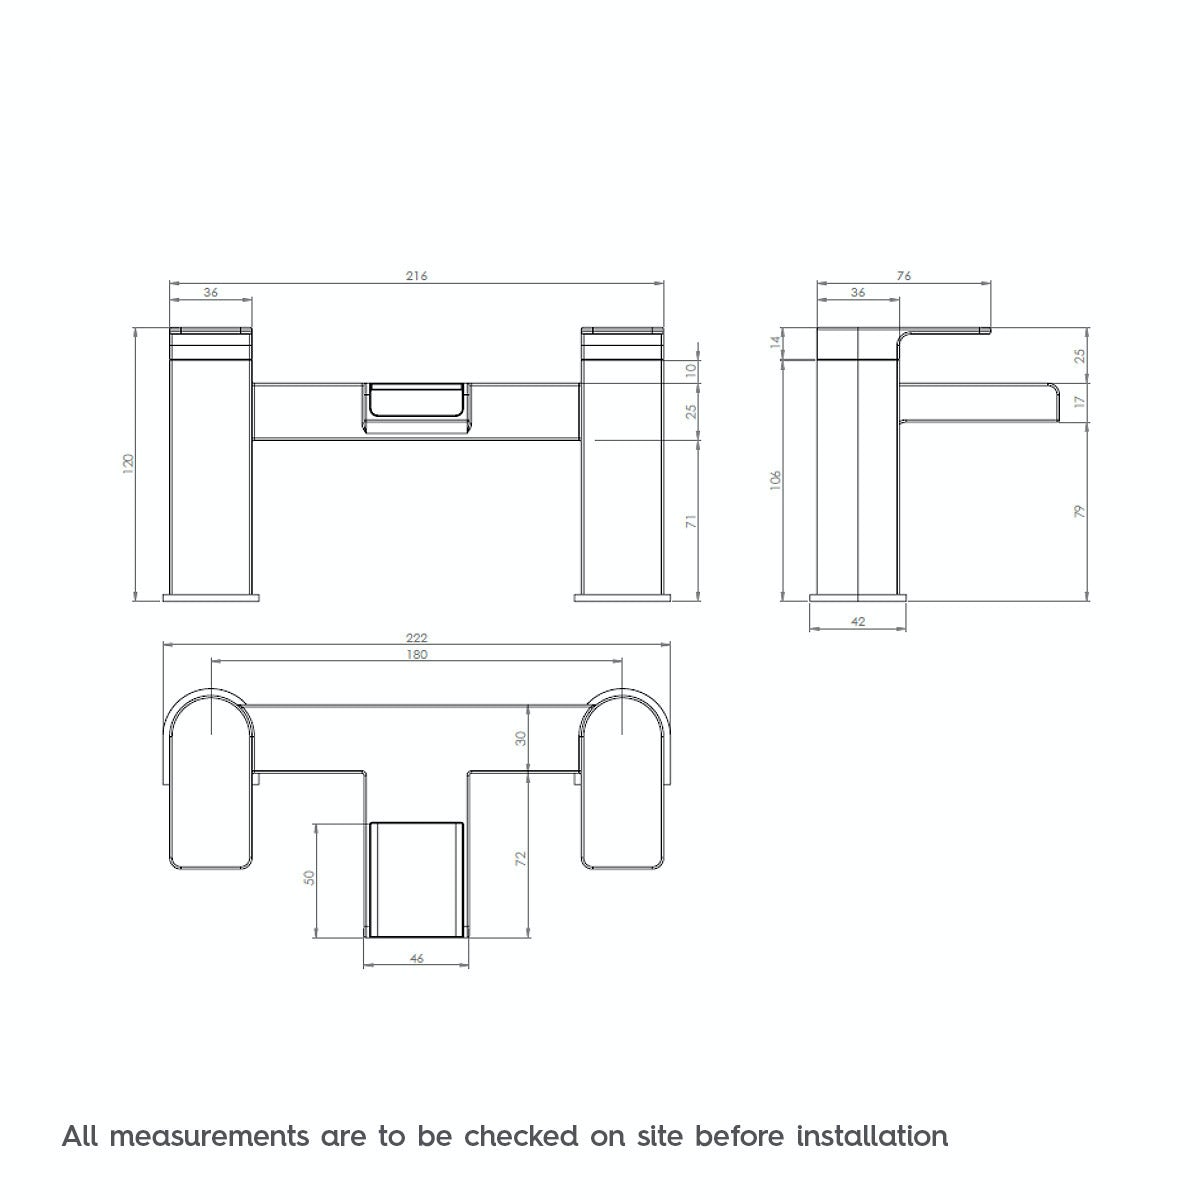 Dimensions for Mode Cooper bath mixer tap